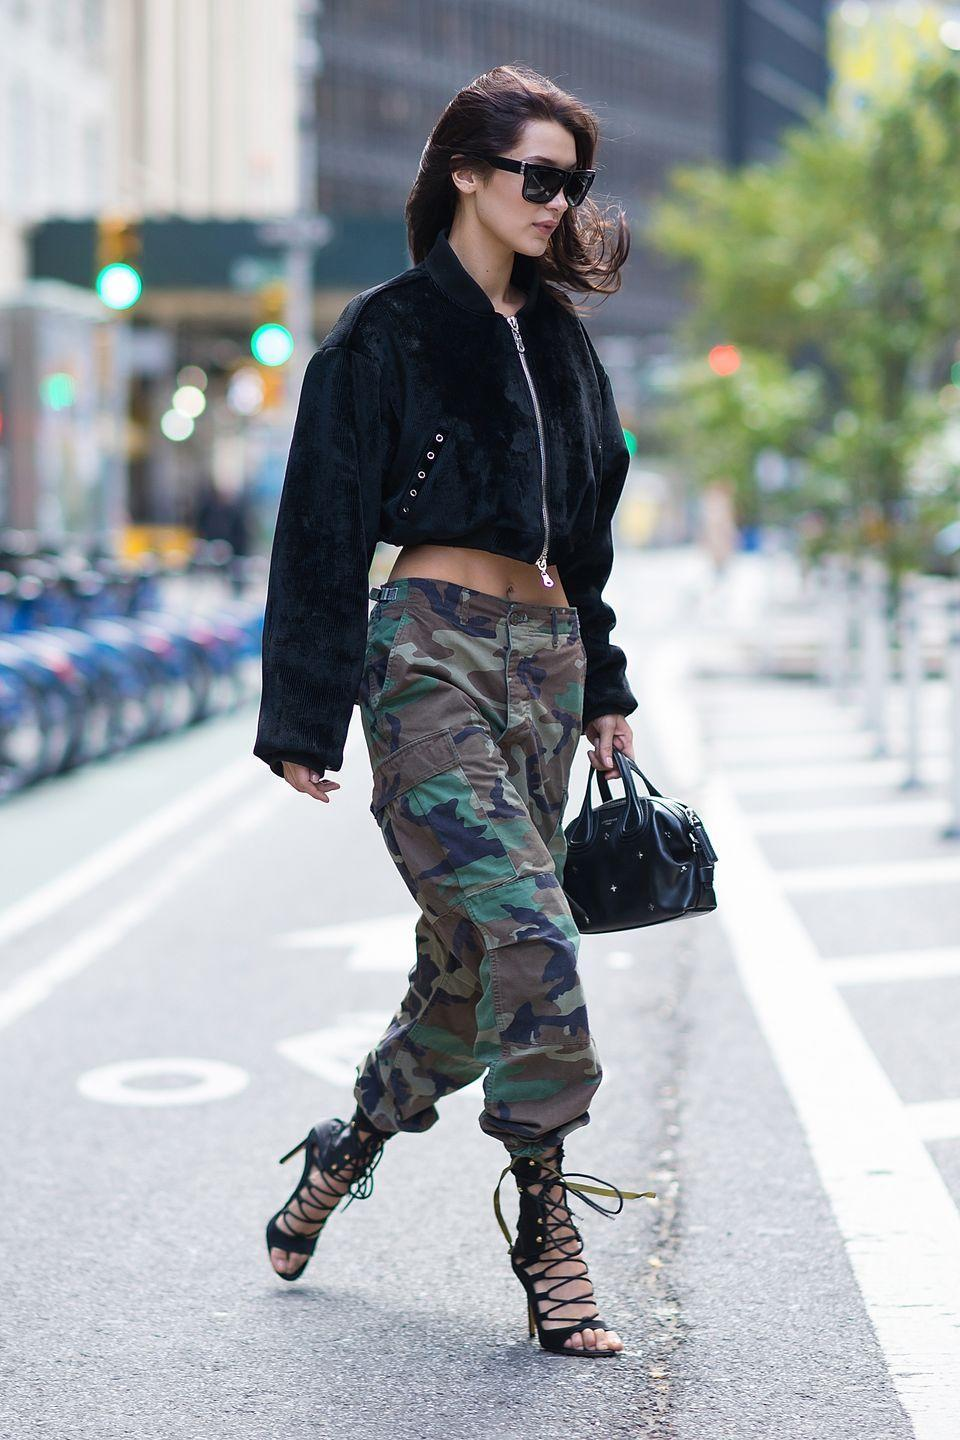 """<p>In camo pants, corduroy bomber, lace-up heeled sandals, a black leather satchel and rectangular sunnies leaving the Victoria's Secret offices—after <a href=""""https://www.harpersbazaar.com/fashion/models/news/a18406/bella-hadid-victorias-secret-fashion-show/"""" rel=""""nofollow noopener"""" target=""""_blank"""" data-ylk=""""slk:landing a coveted spot"""" class=""""link rapid-noclick-resp"""">landing a coveted spot</a> in this year's fashion show. </p>"""